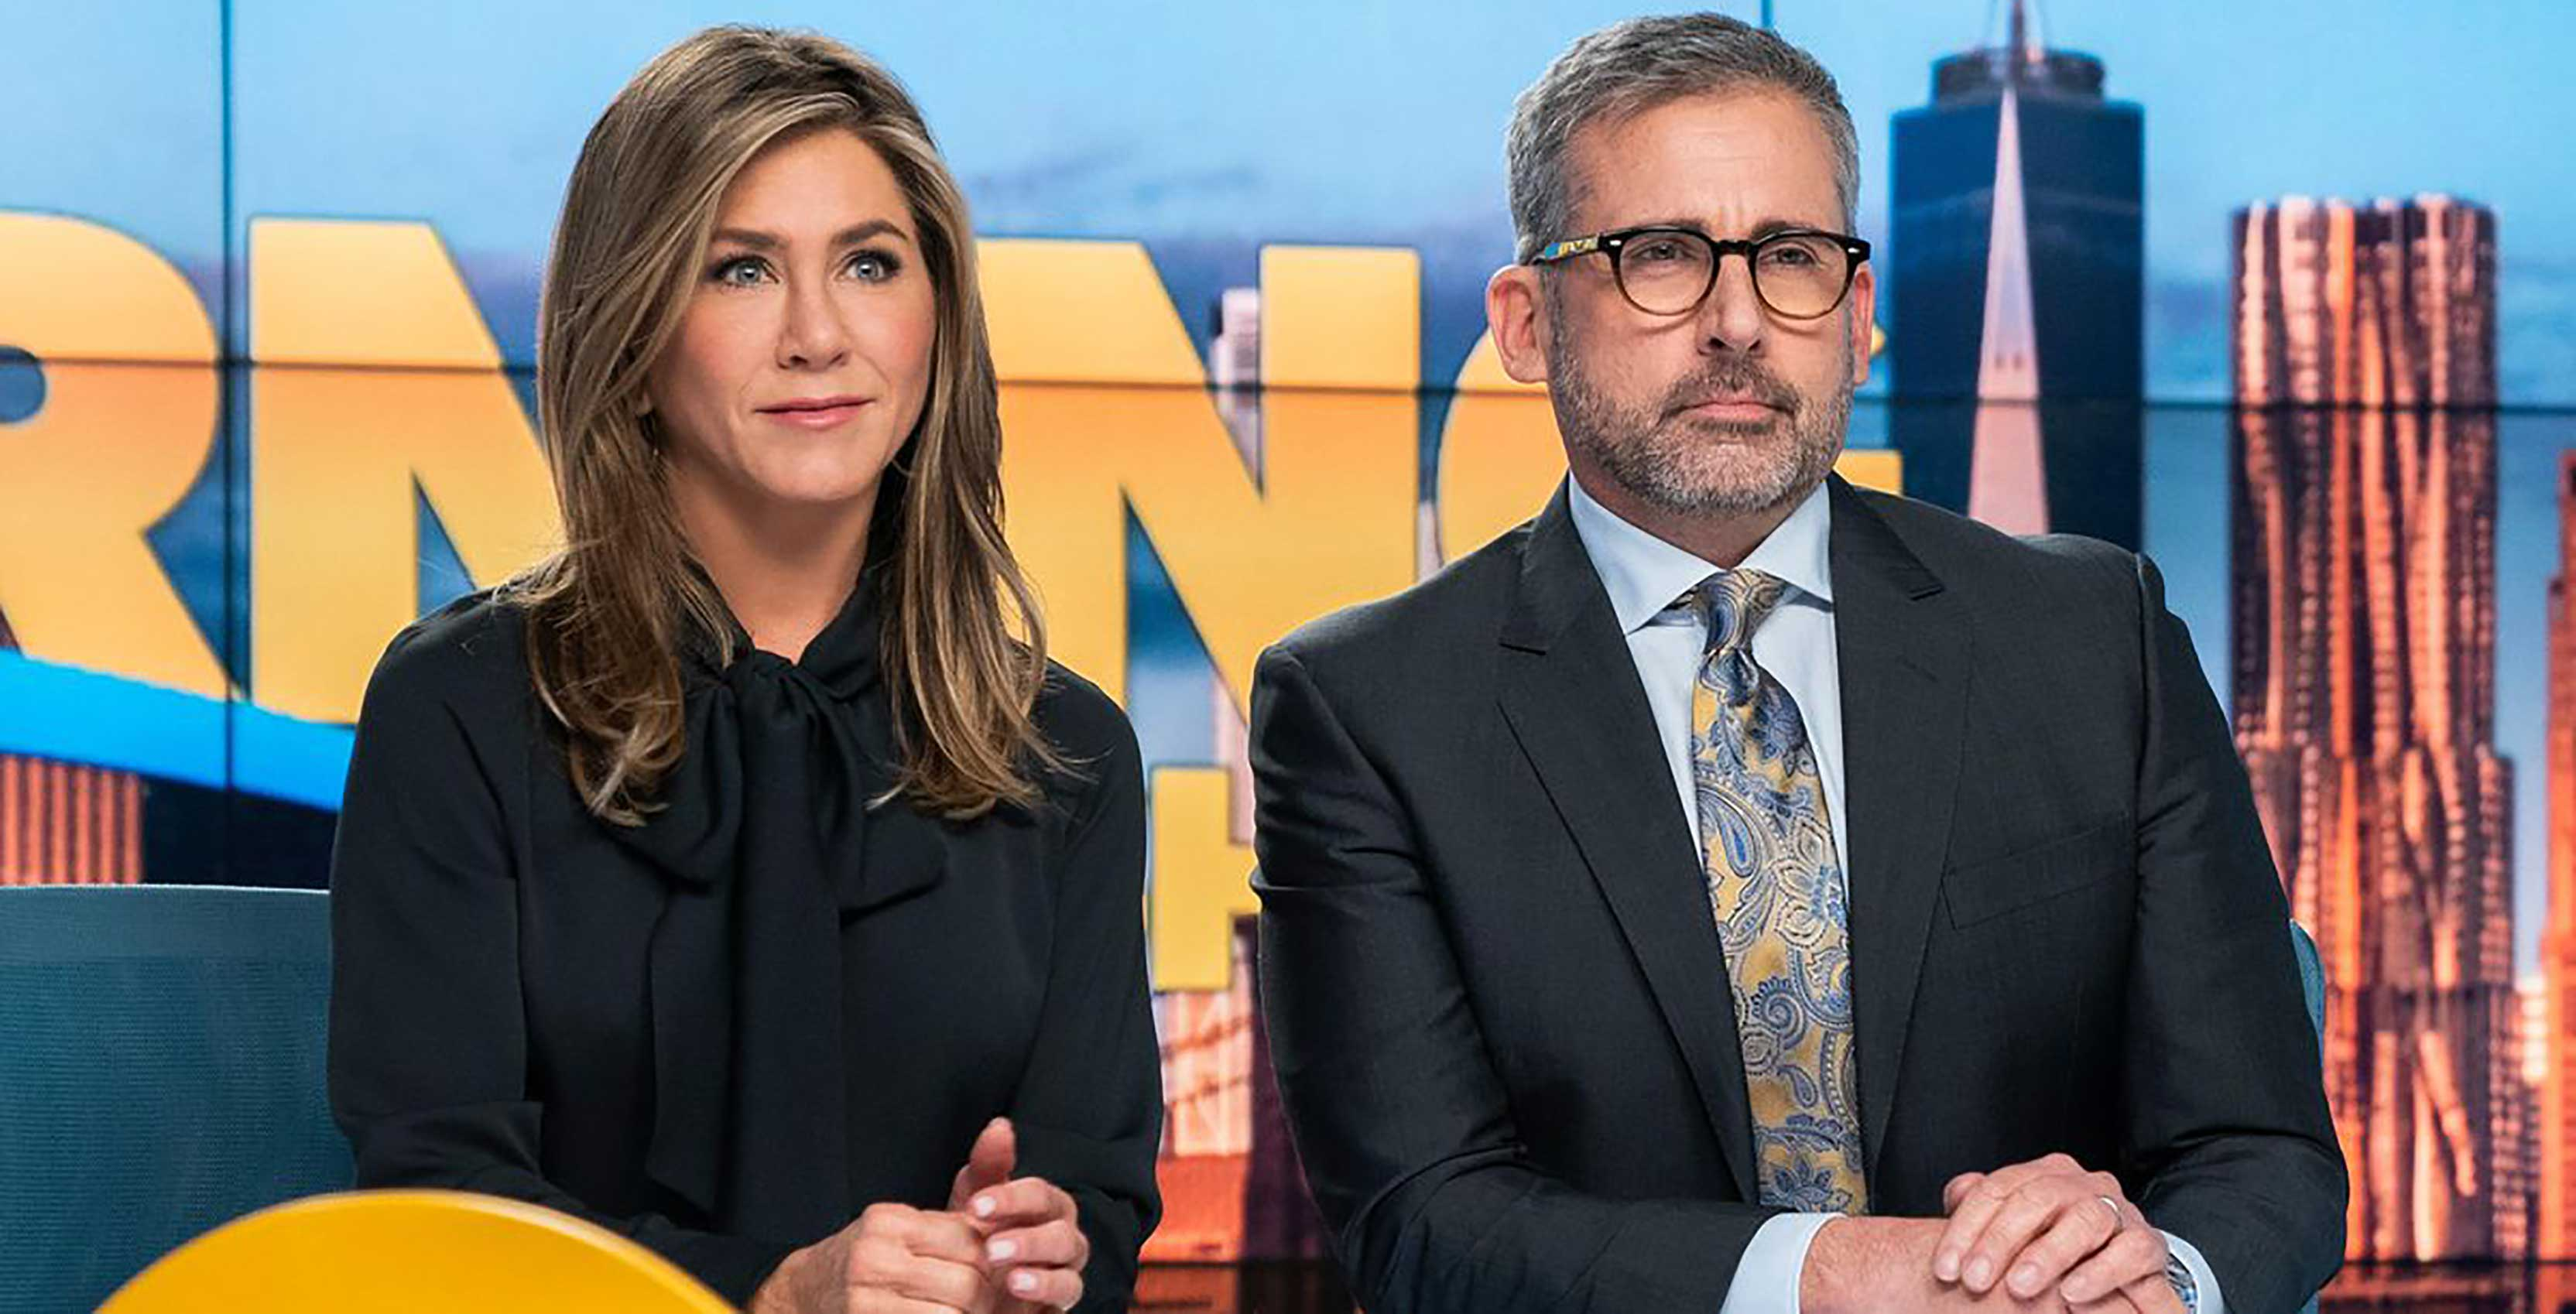 The Morning Show Jennifer Aniston and Steve Carrell